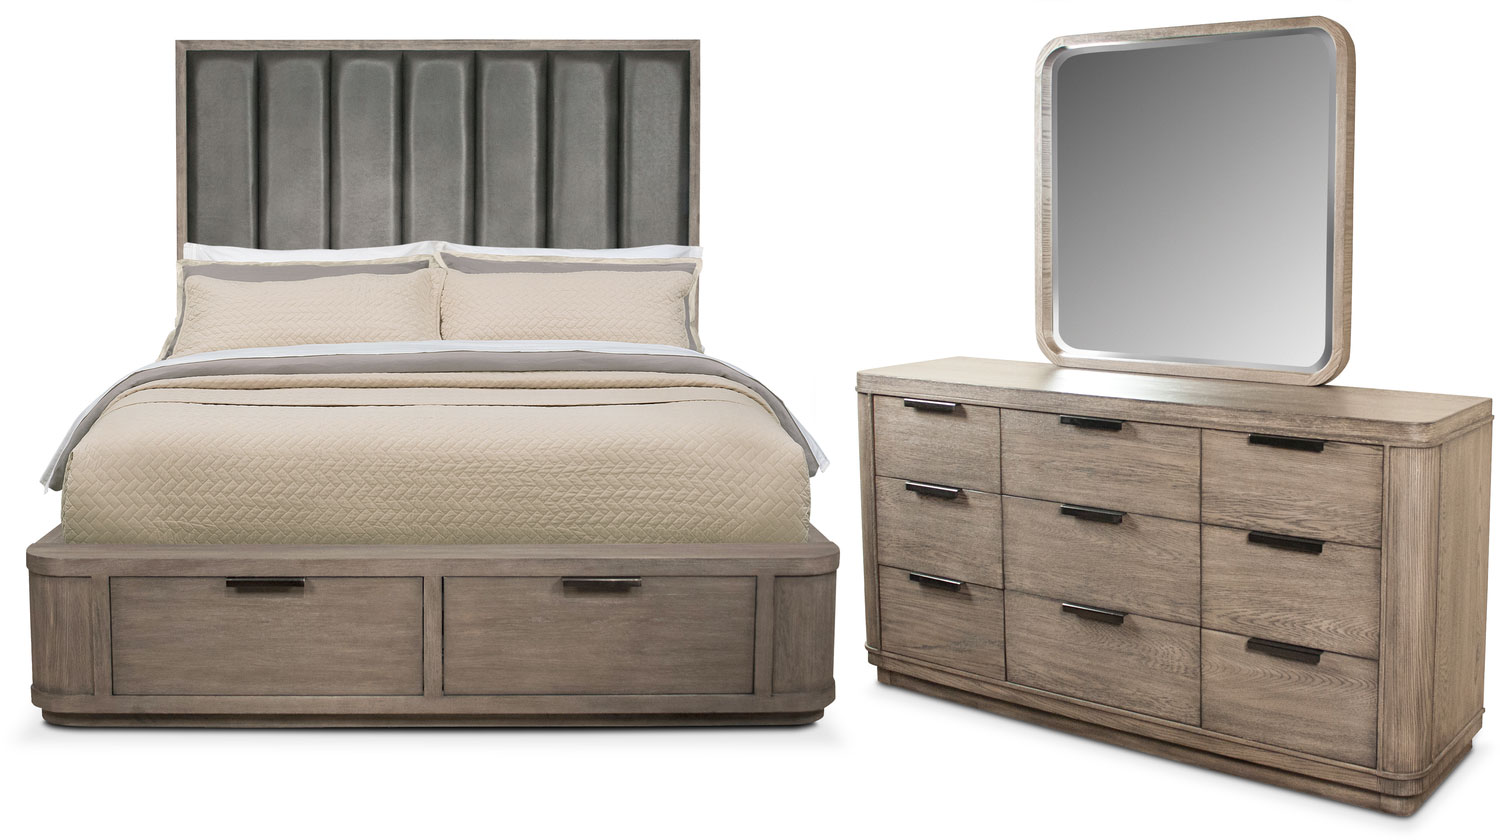 Malibu 5-Piece Queen Tall Upholstered Storage  Bedroom Set - Gray